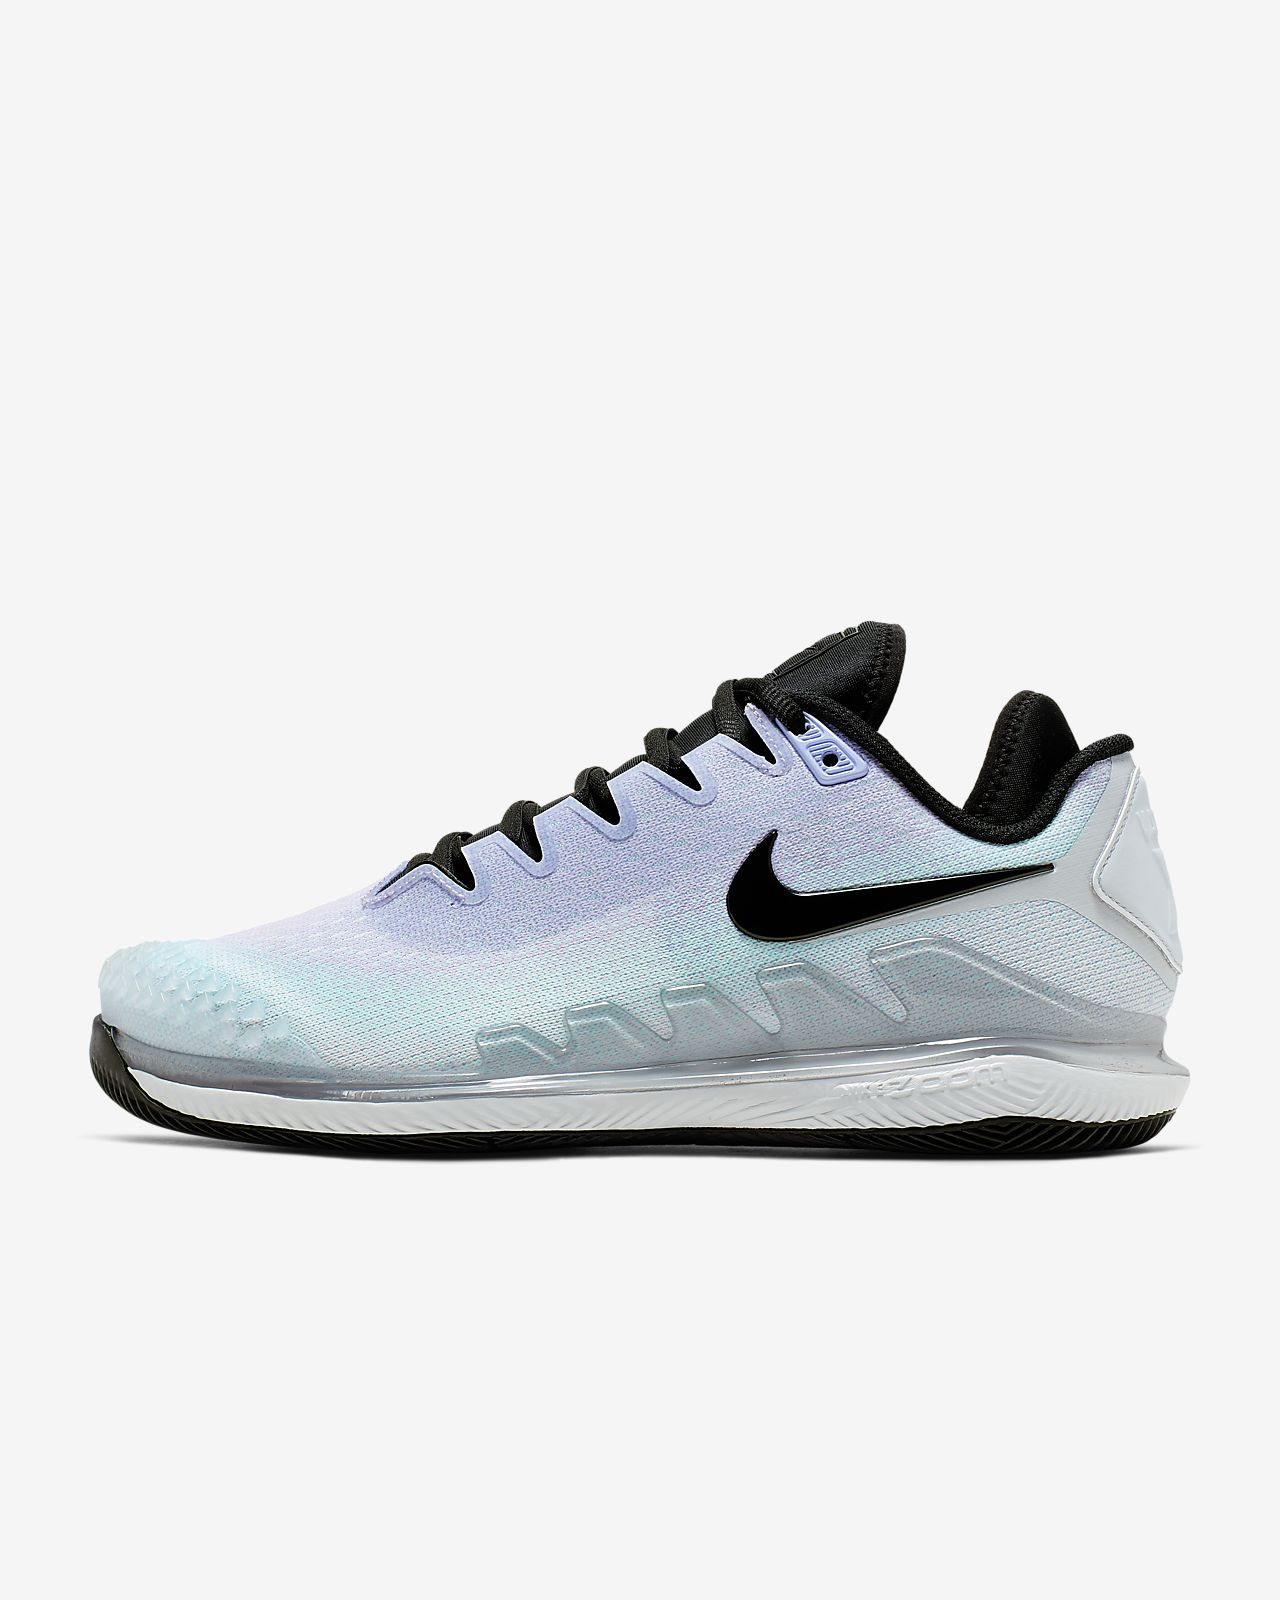 NikeCourt Air Zoom Vapor X Knit Hardcourt tennisschoen voor dames